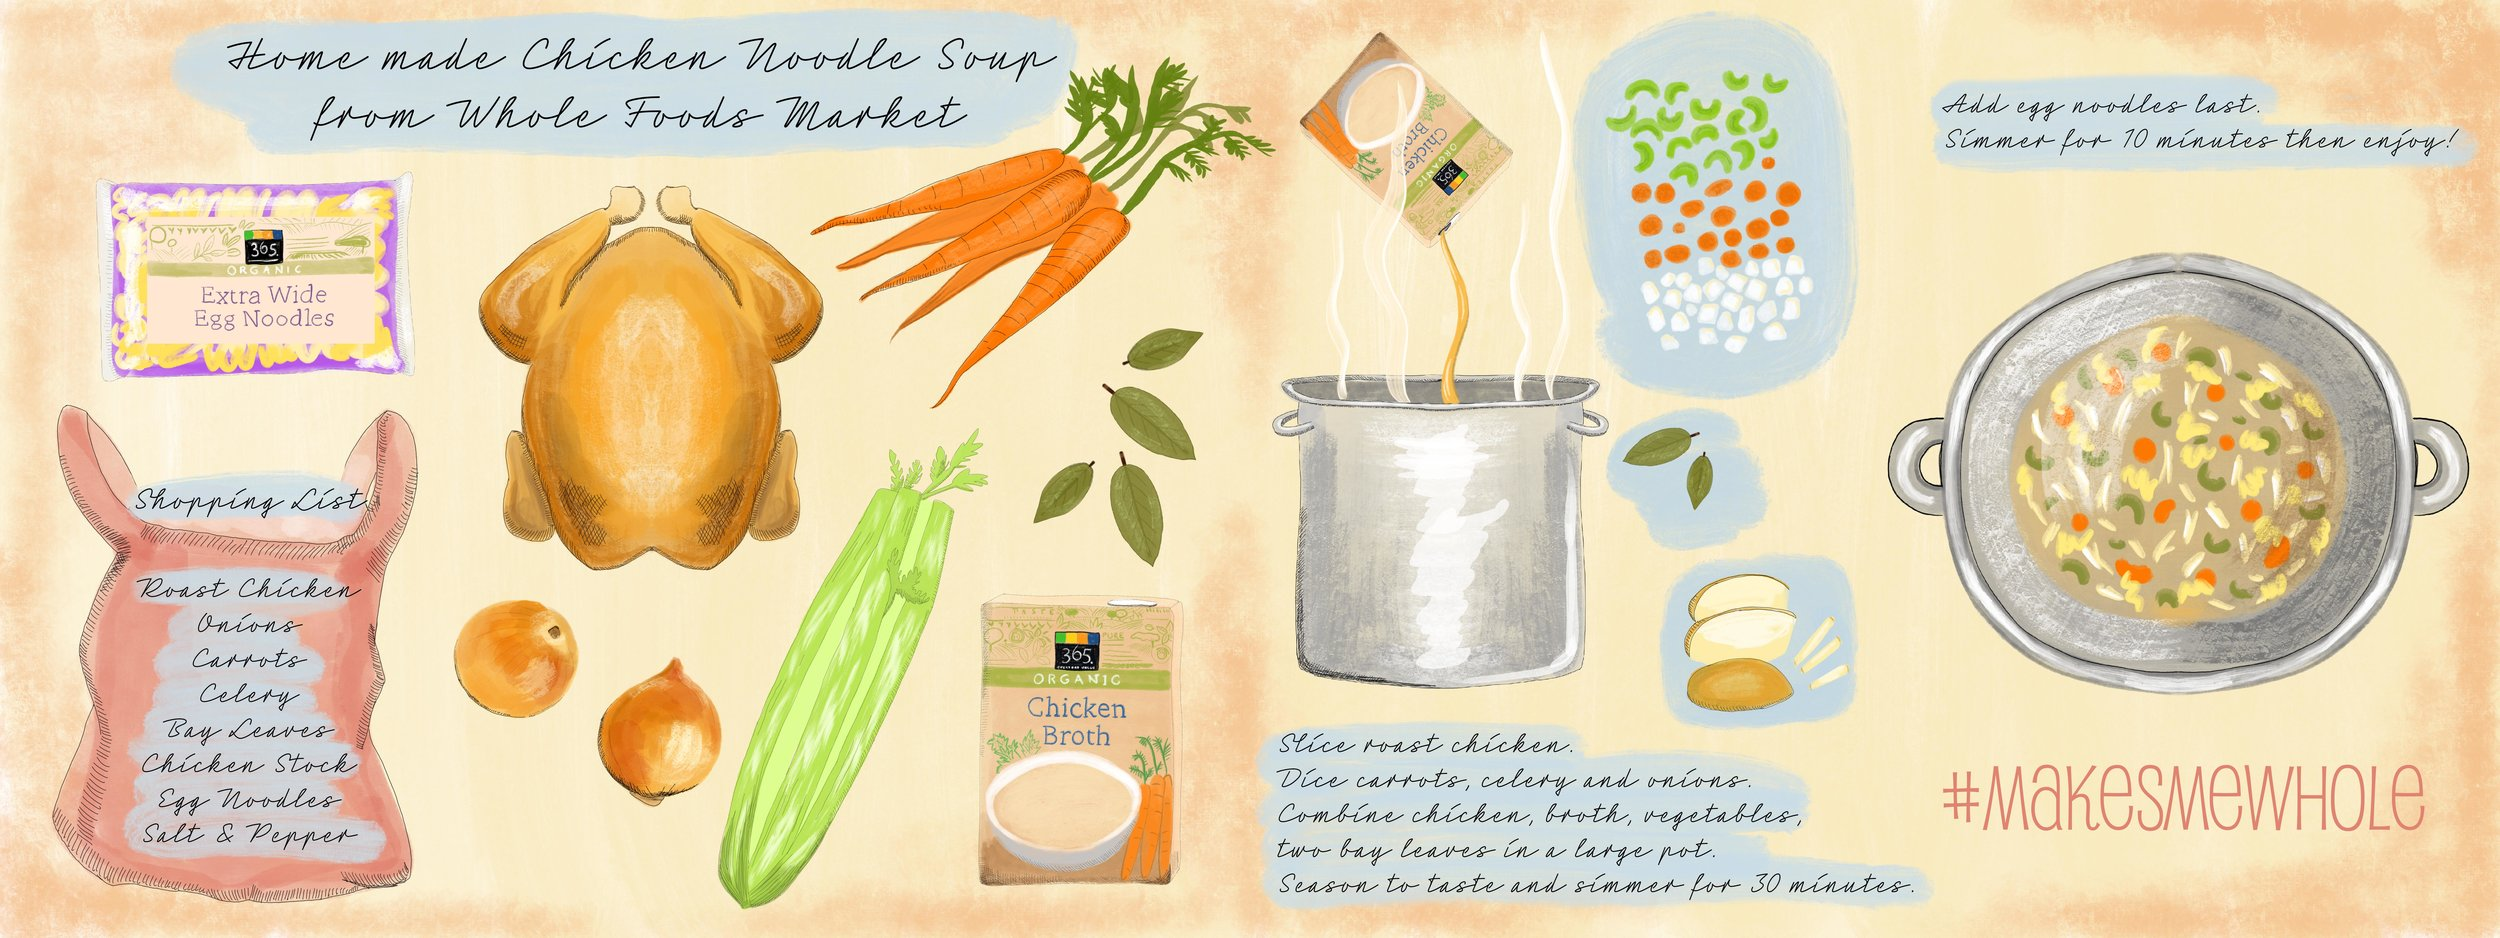 Chicken_Soup_Recipe Final 2.jpg